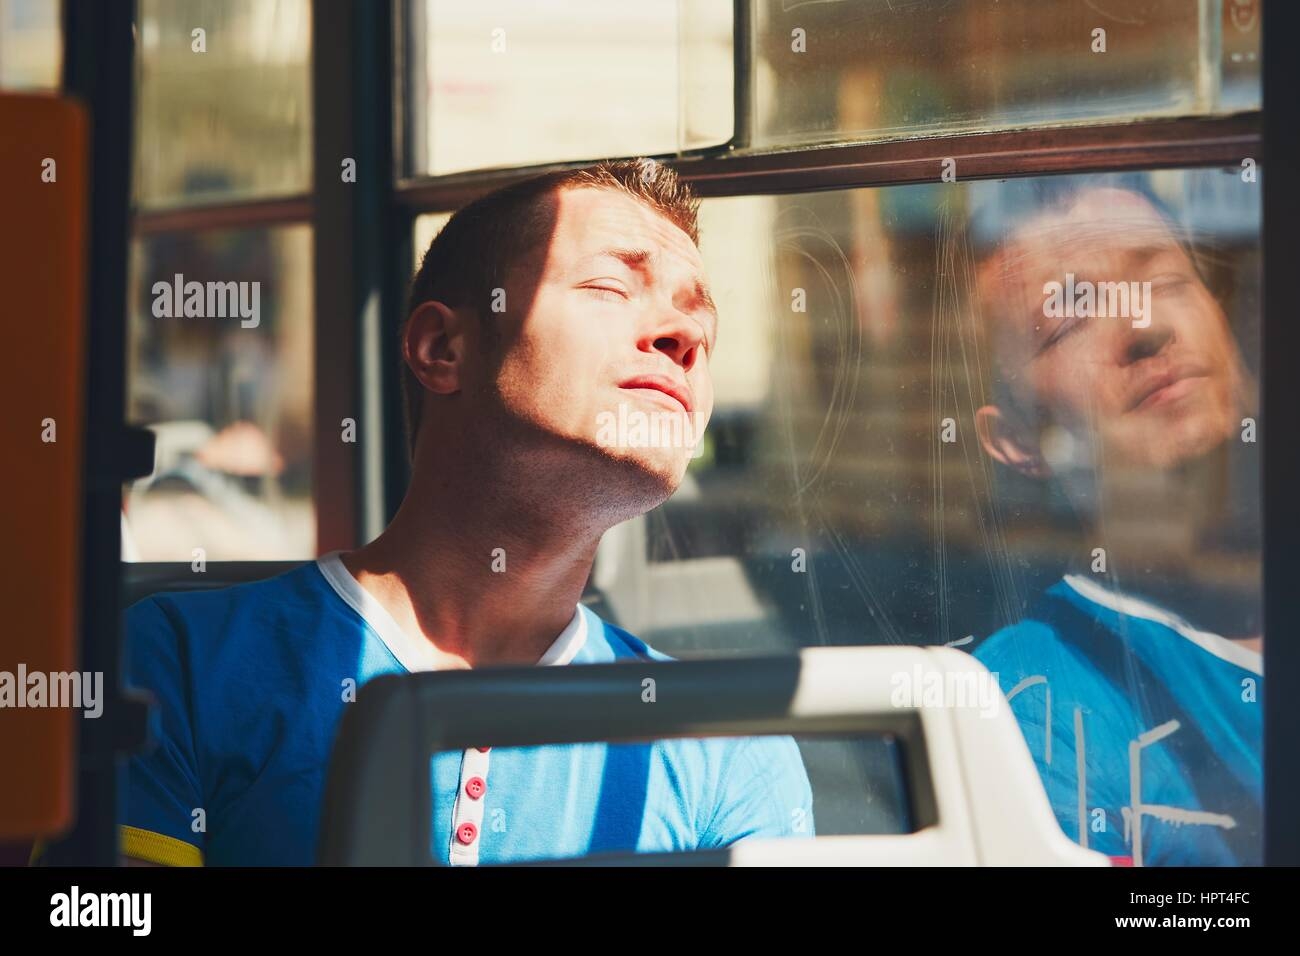 Everyday life and commuting to work by public transportation. Handsome young man is traveling by tram (bus). Tired - Stock Image